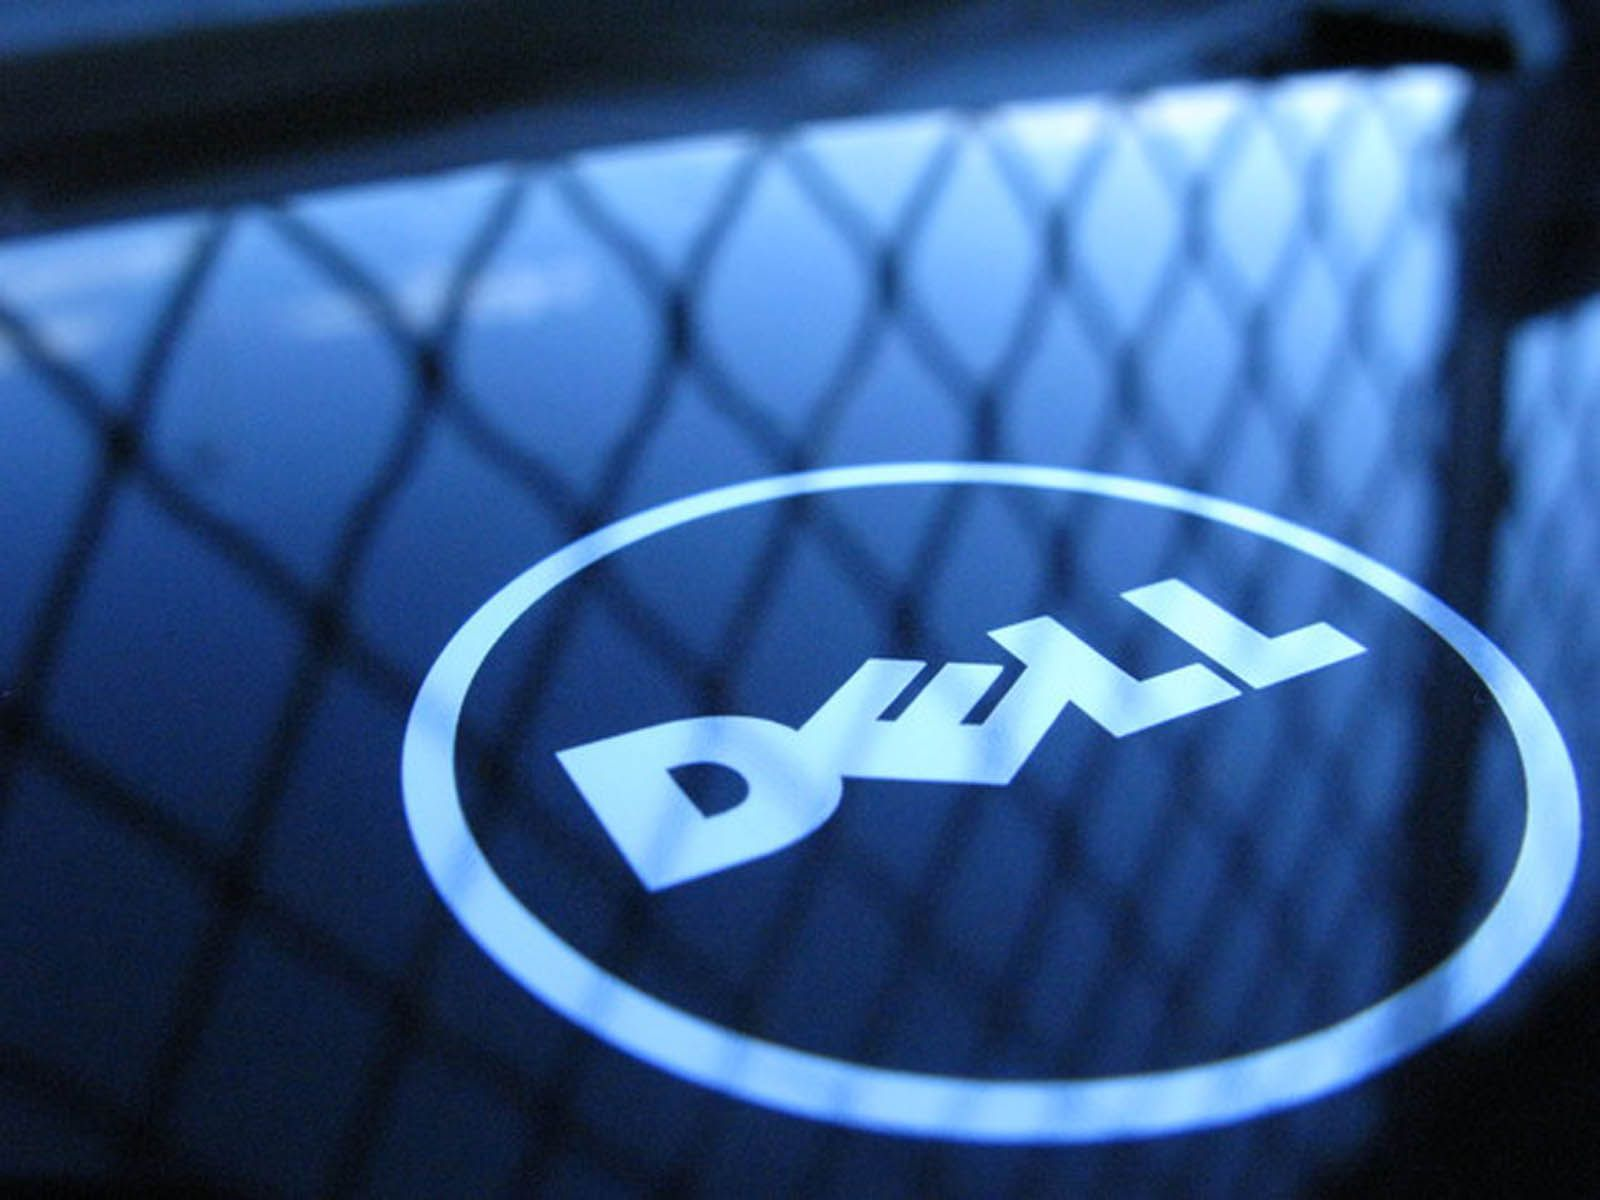 Dell desktop backgrounds hd wallpapers pinterest dell dell desktop backgrounds hd wallpapers pinterest dell desktop wallpaper and desktop backgrounds biocorpaavc Images